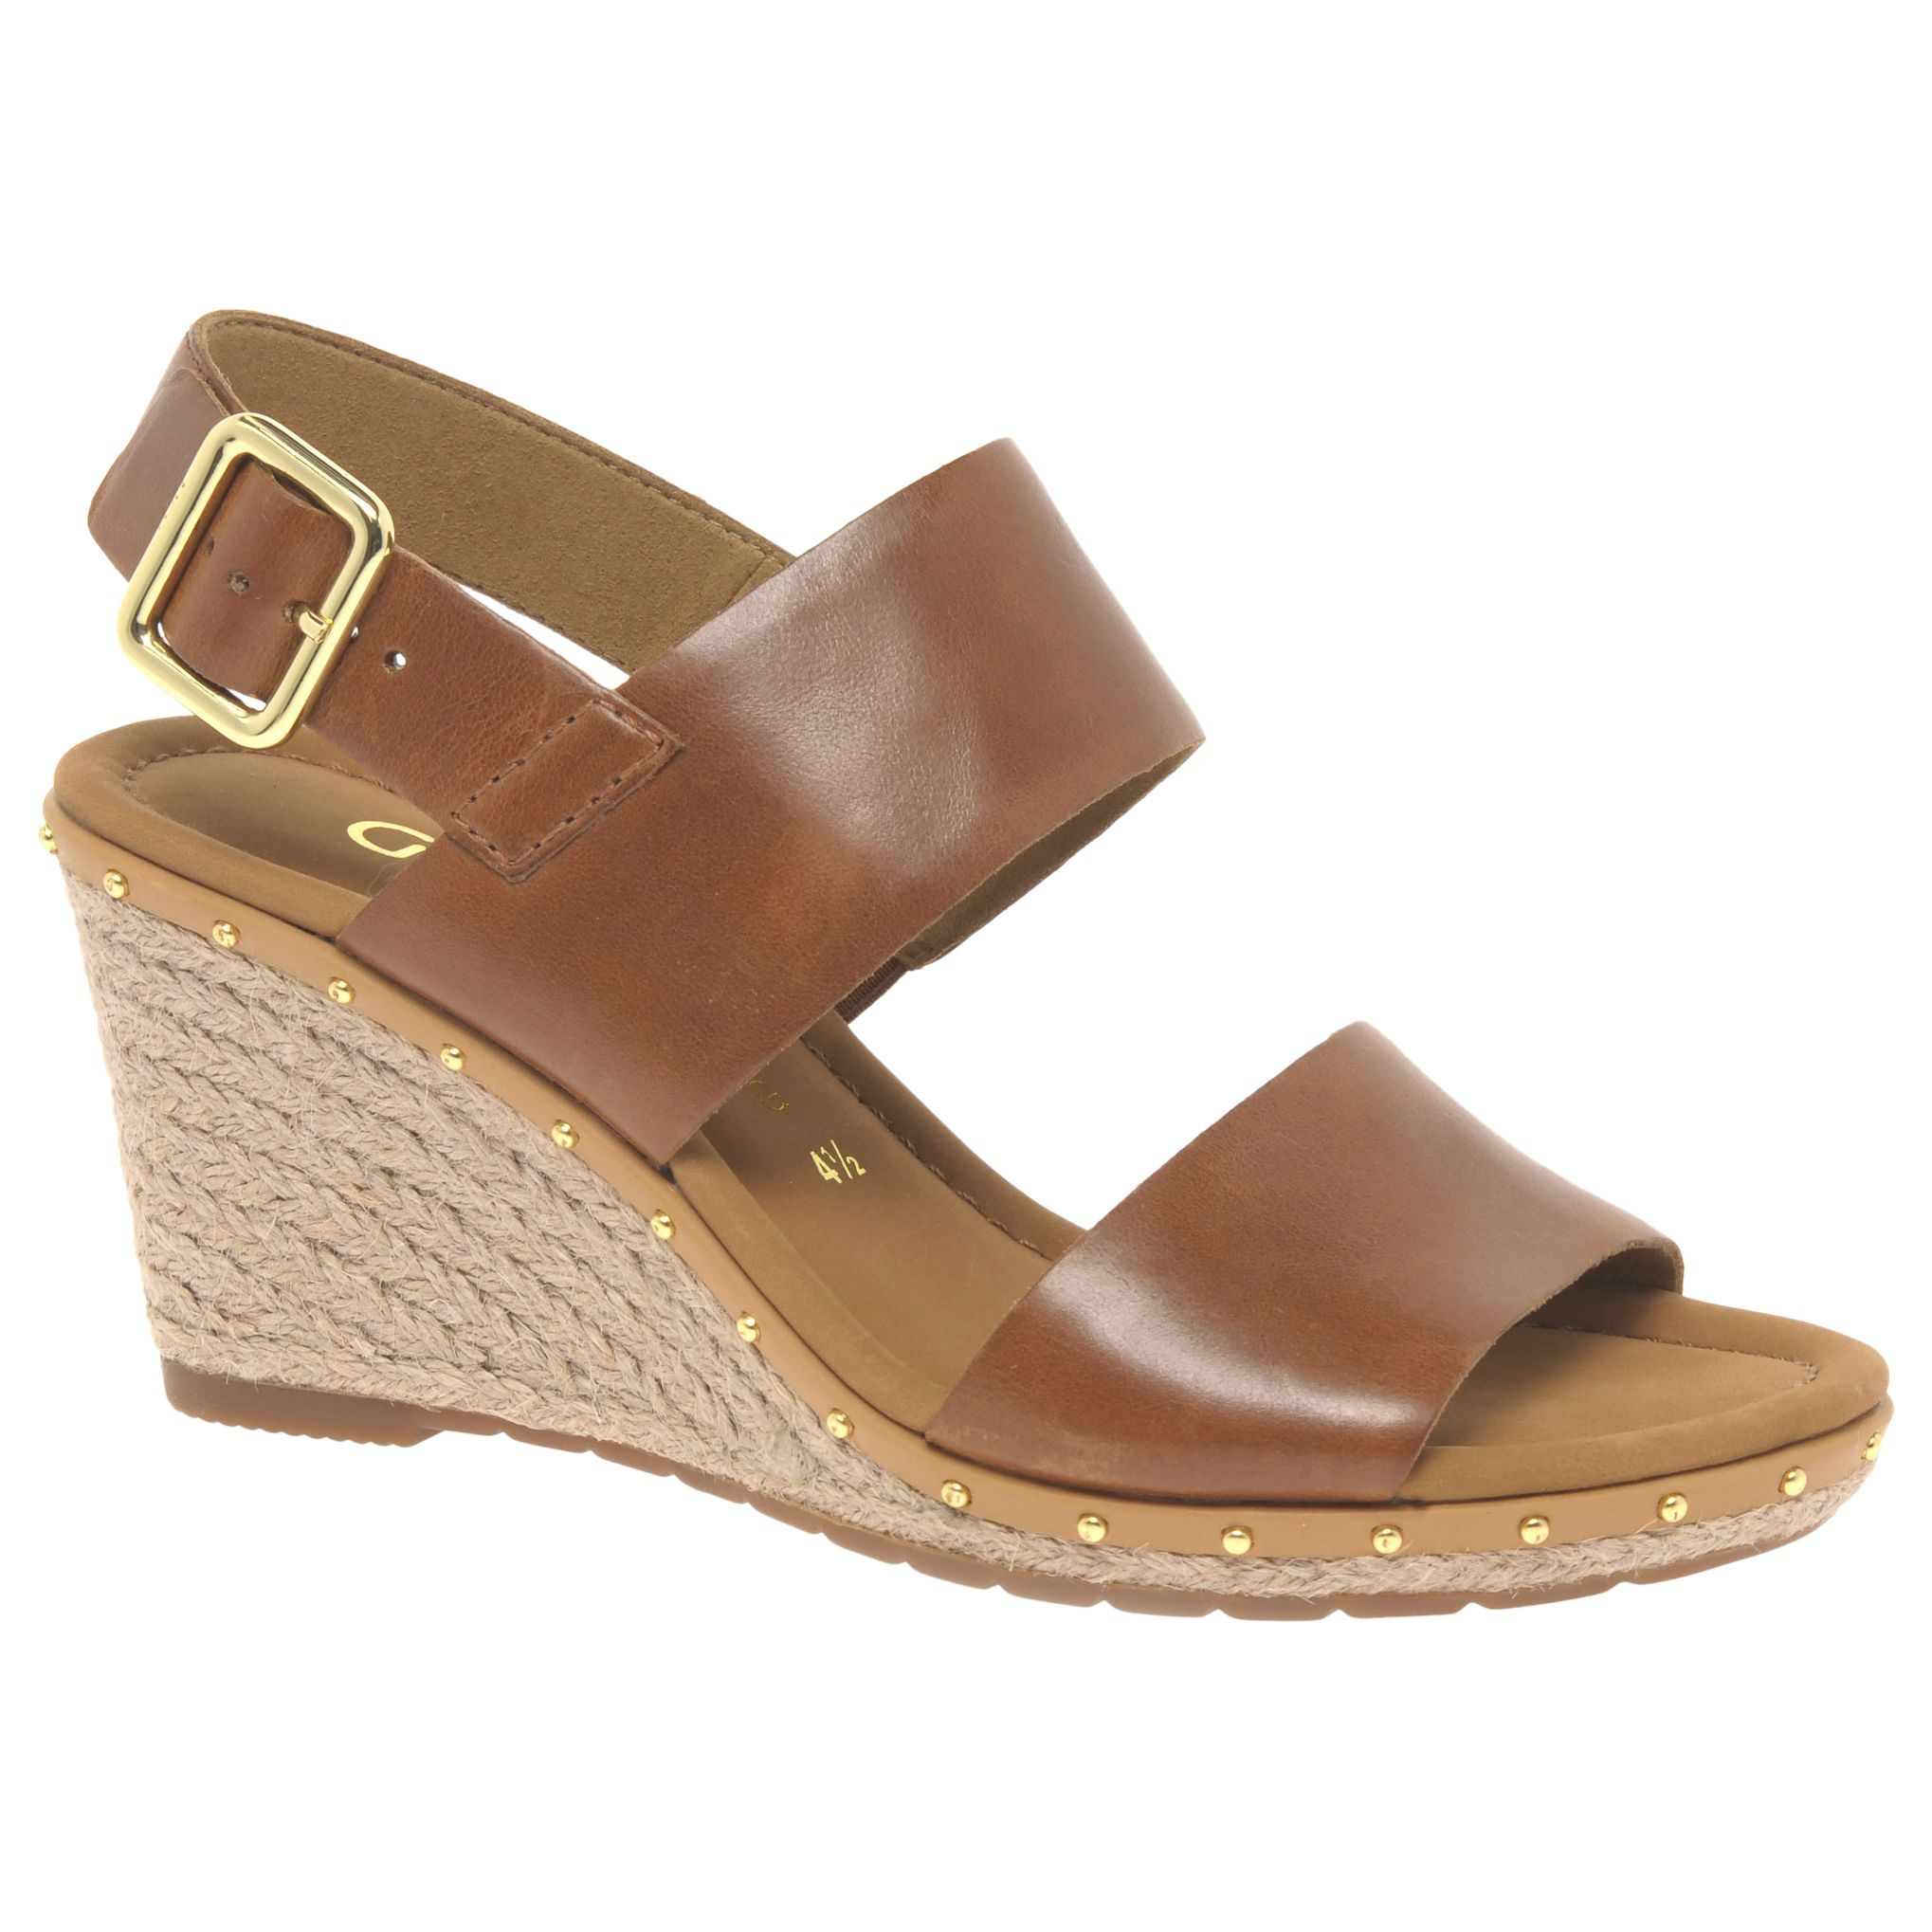 Gabor Height At Wide Wedge Mid Sandals Anna John Fitting 2 Lewis 7gy6bIfvY